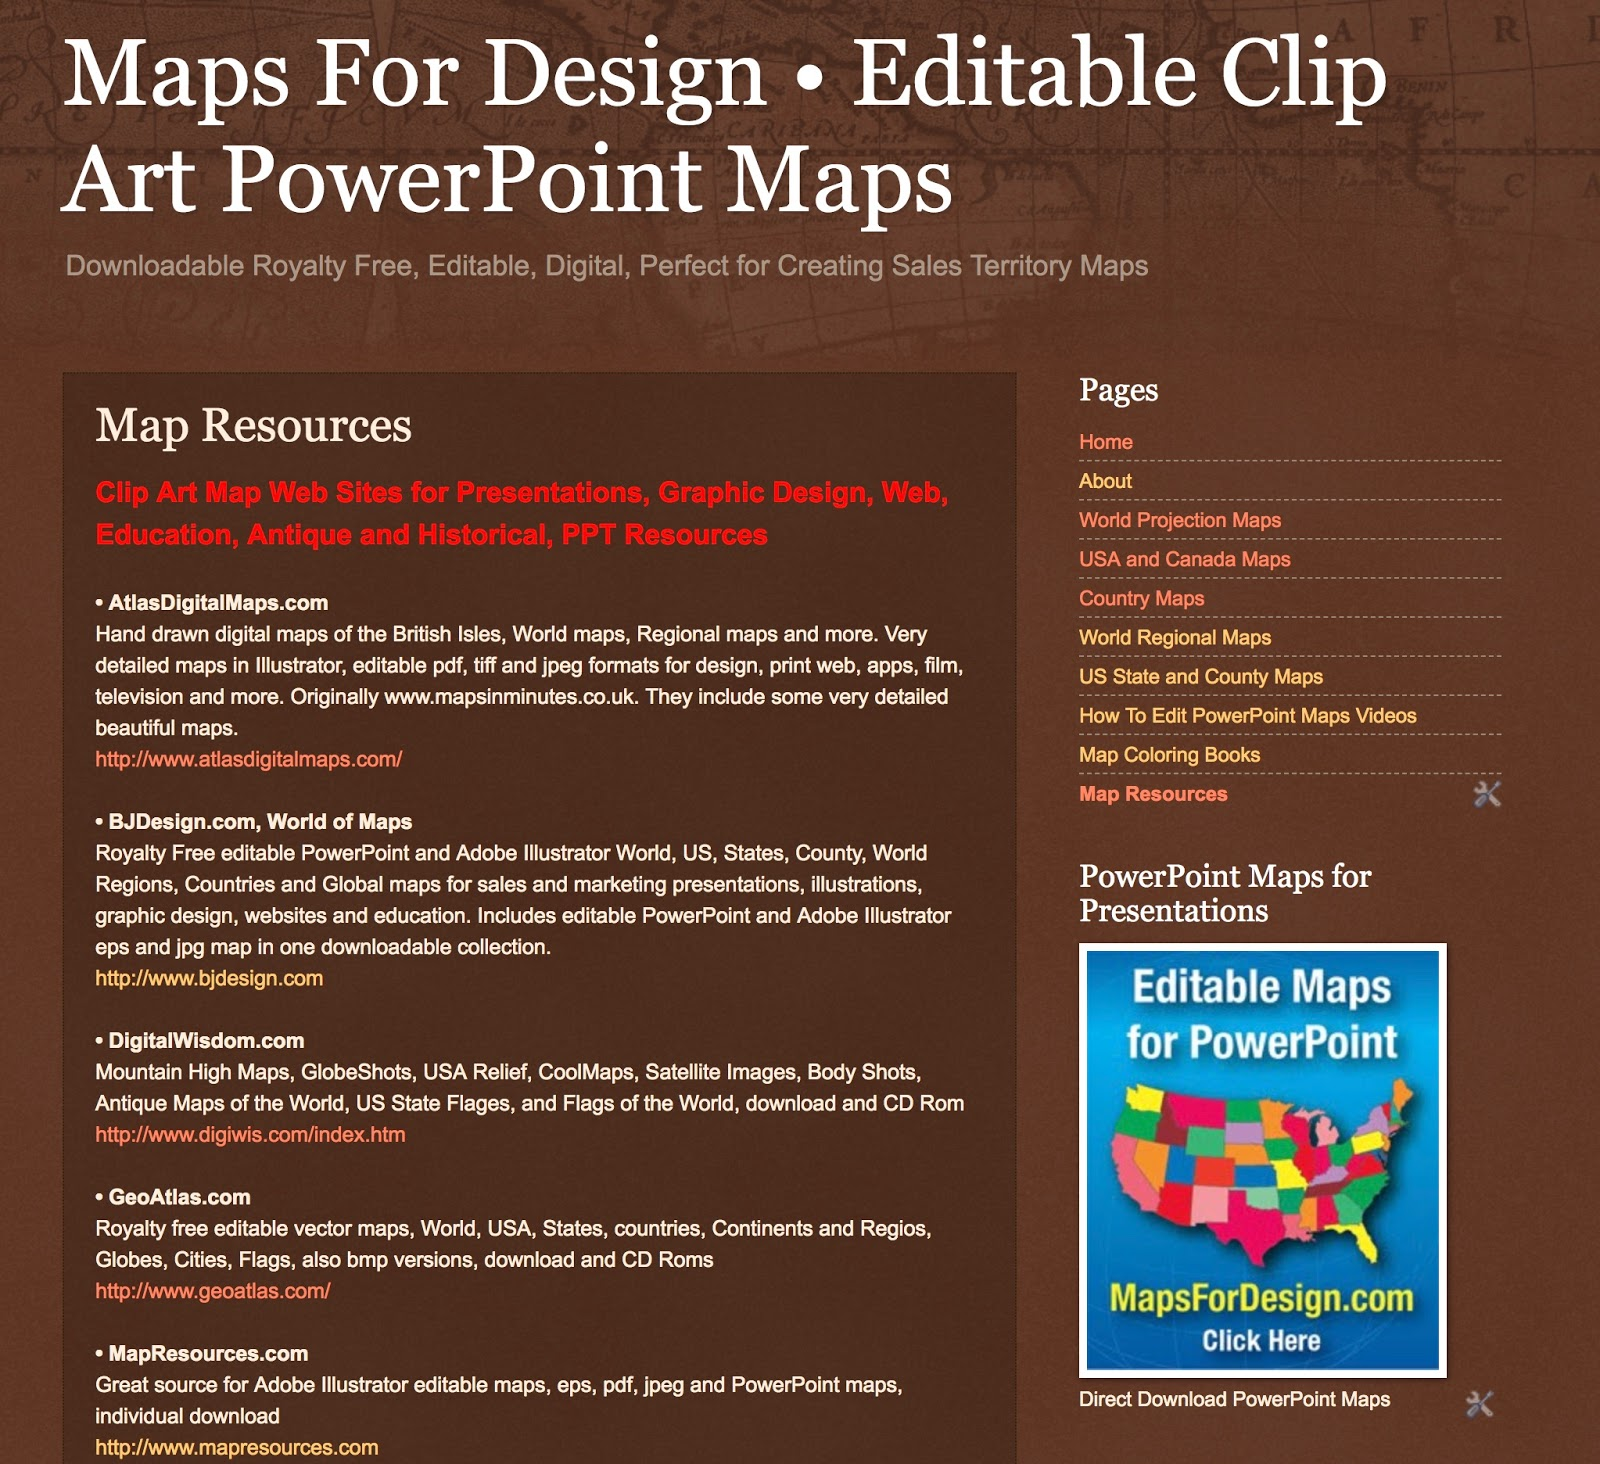 we are please to announce our new map resources page on our mapsfordesign blog this resources includes clip art and map presentation websites powerpoint